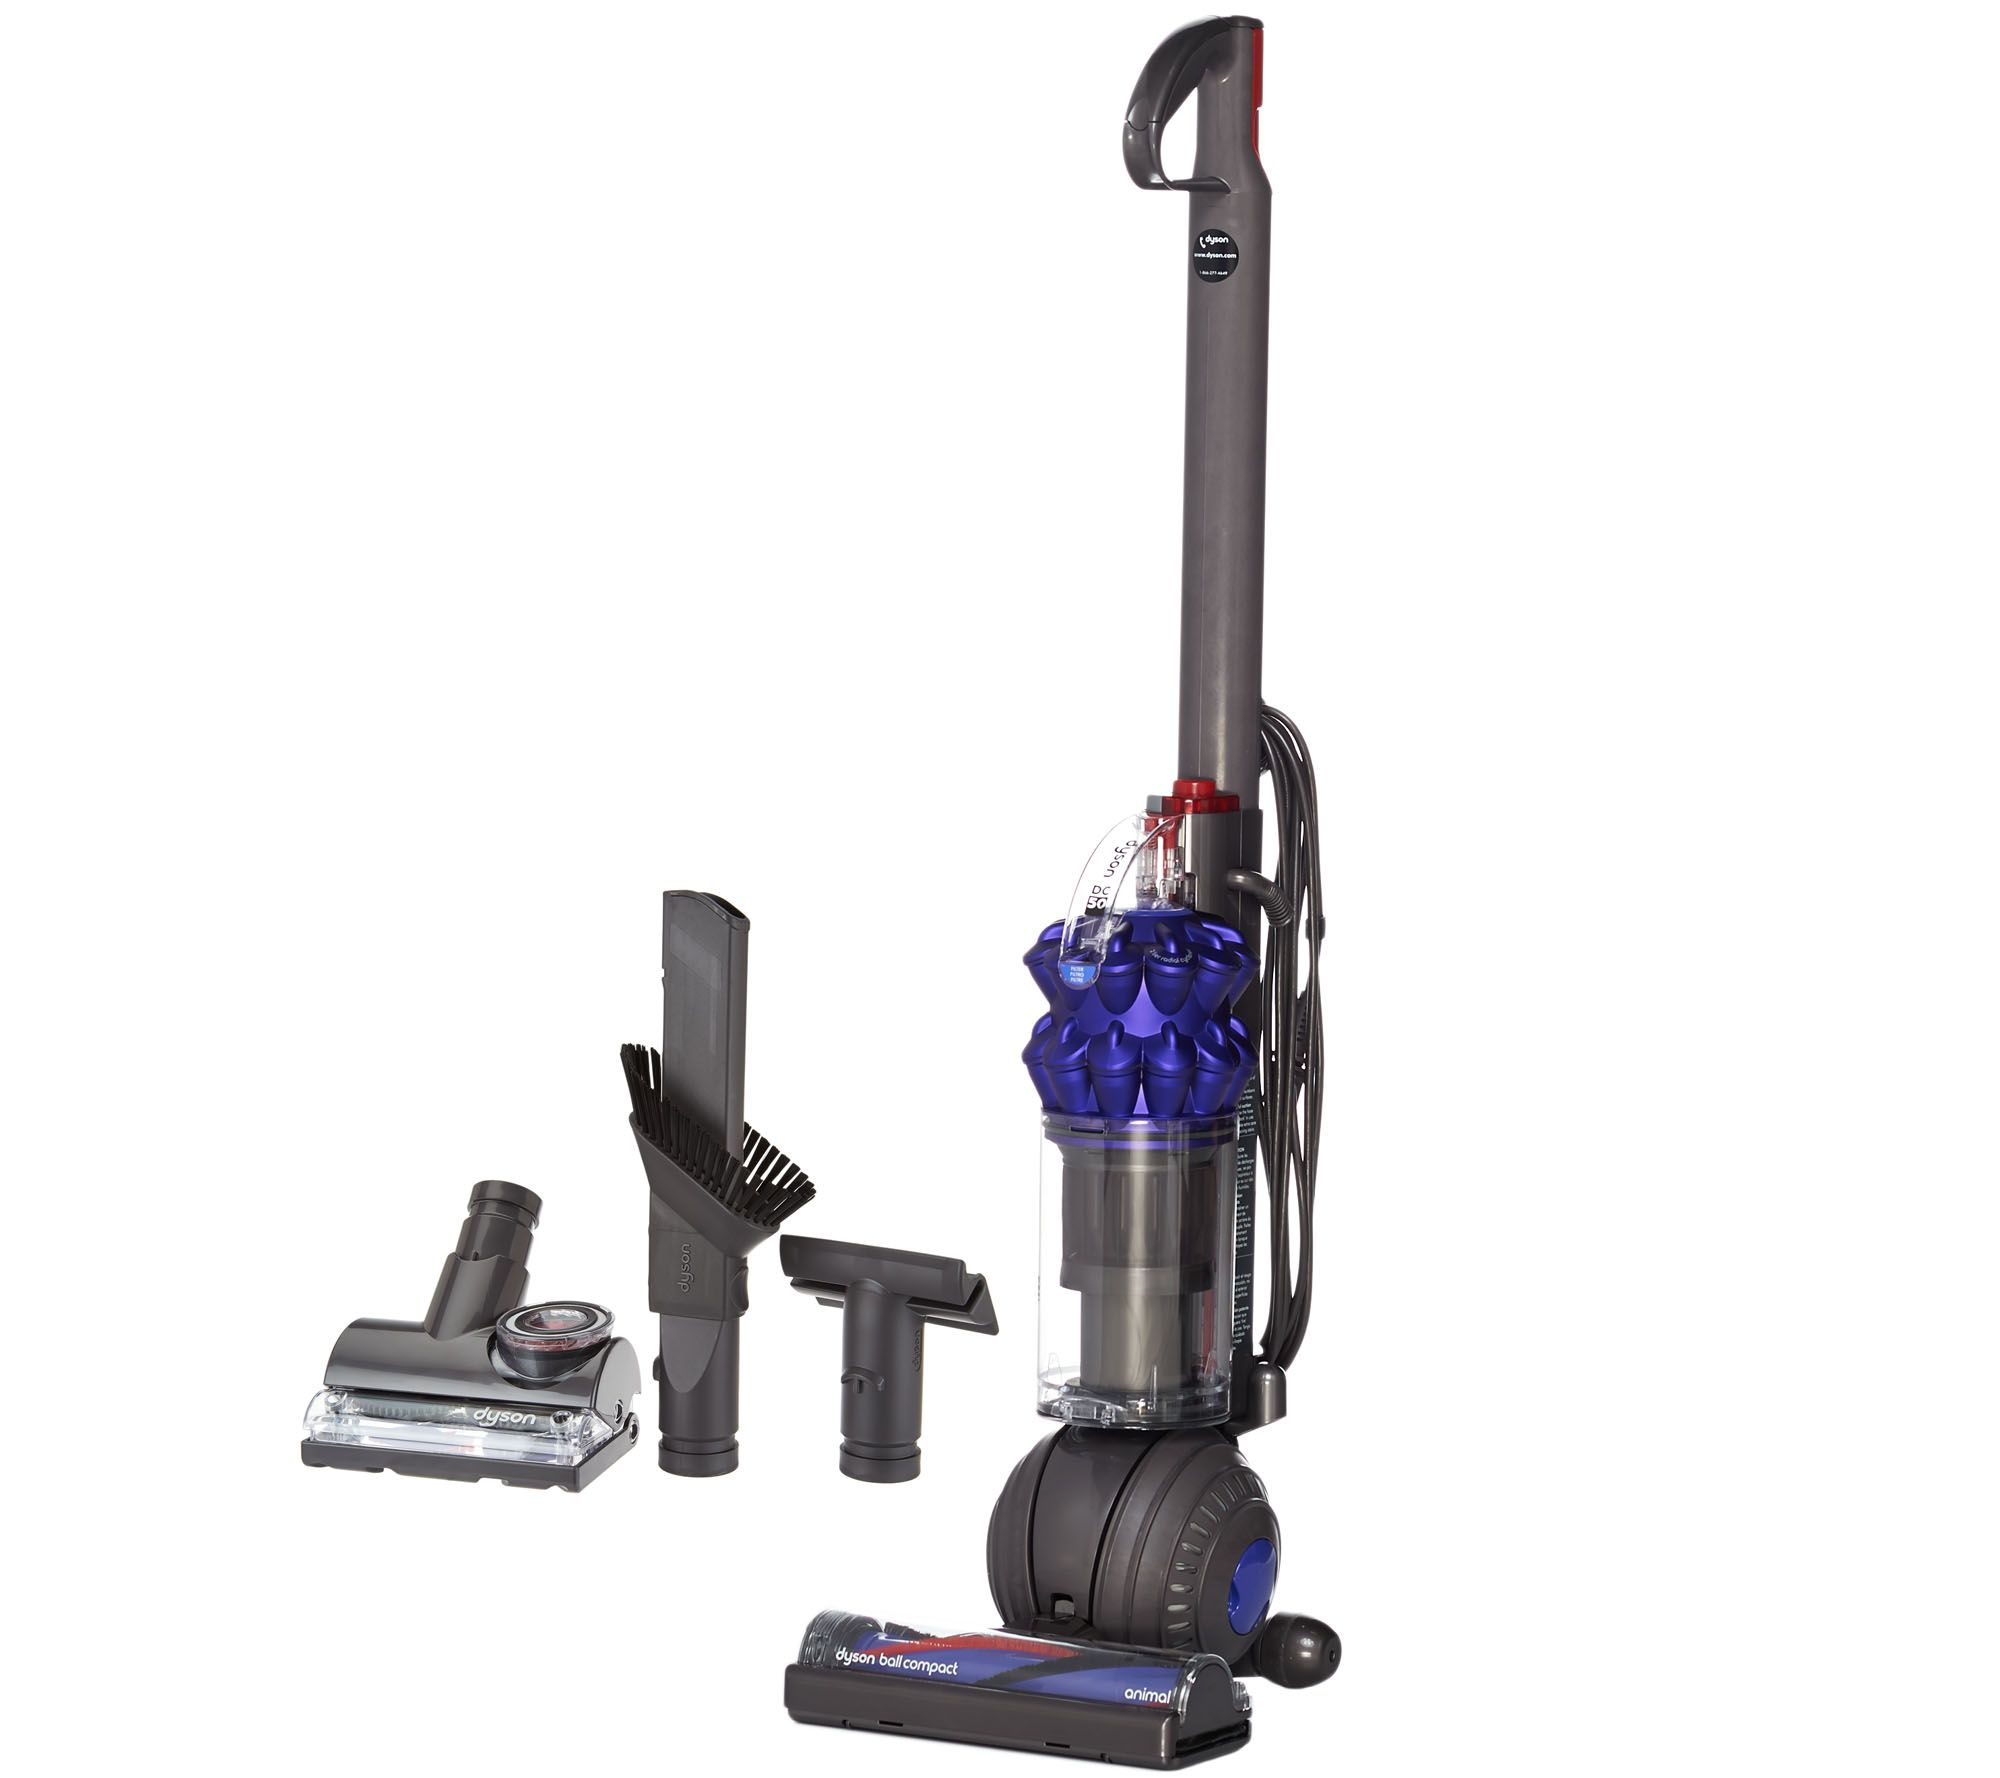 Dyson Ball pact Animal Lightweight Upright Vacuum and 4 Tools